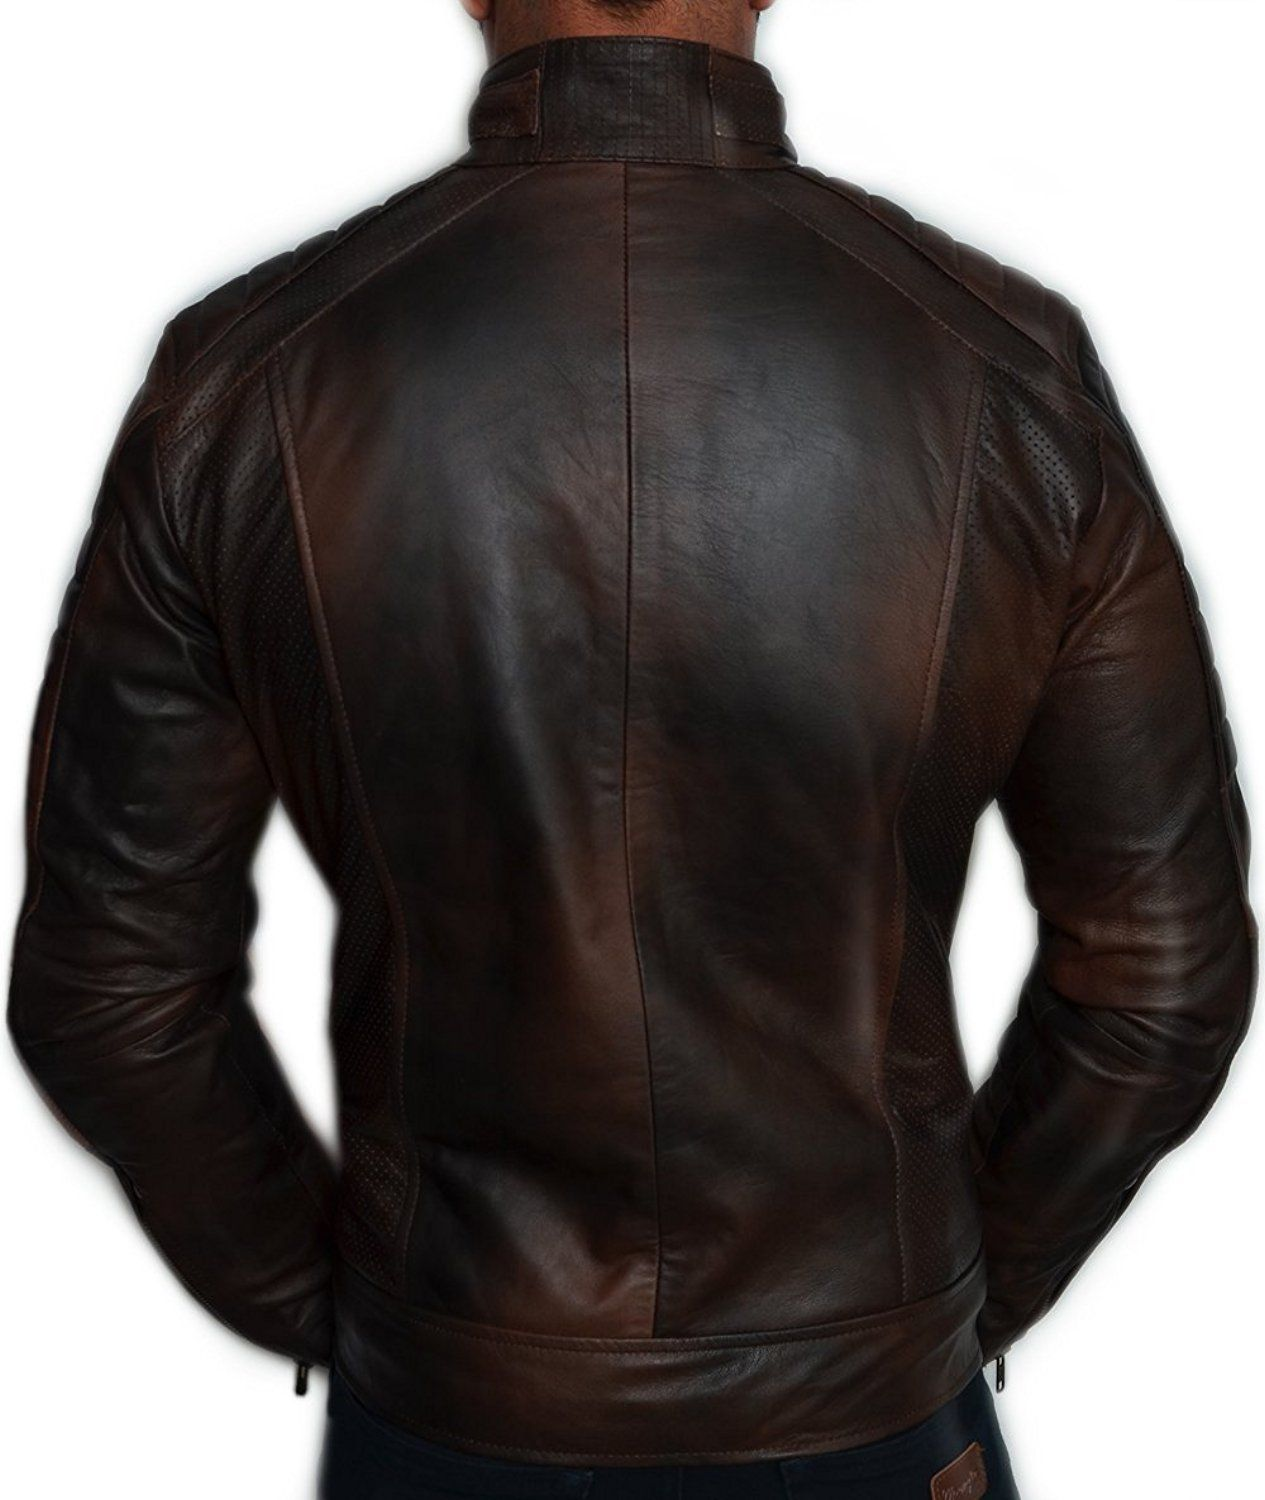 dd5313e766bb Mens Biker Vintage Motorcycle Distressed Brown Cafe Racer Leather Jacket  TOP SELLER: Amazon.co.uk: Clothing